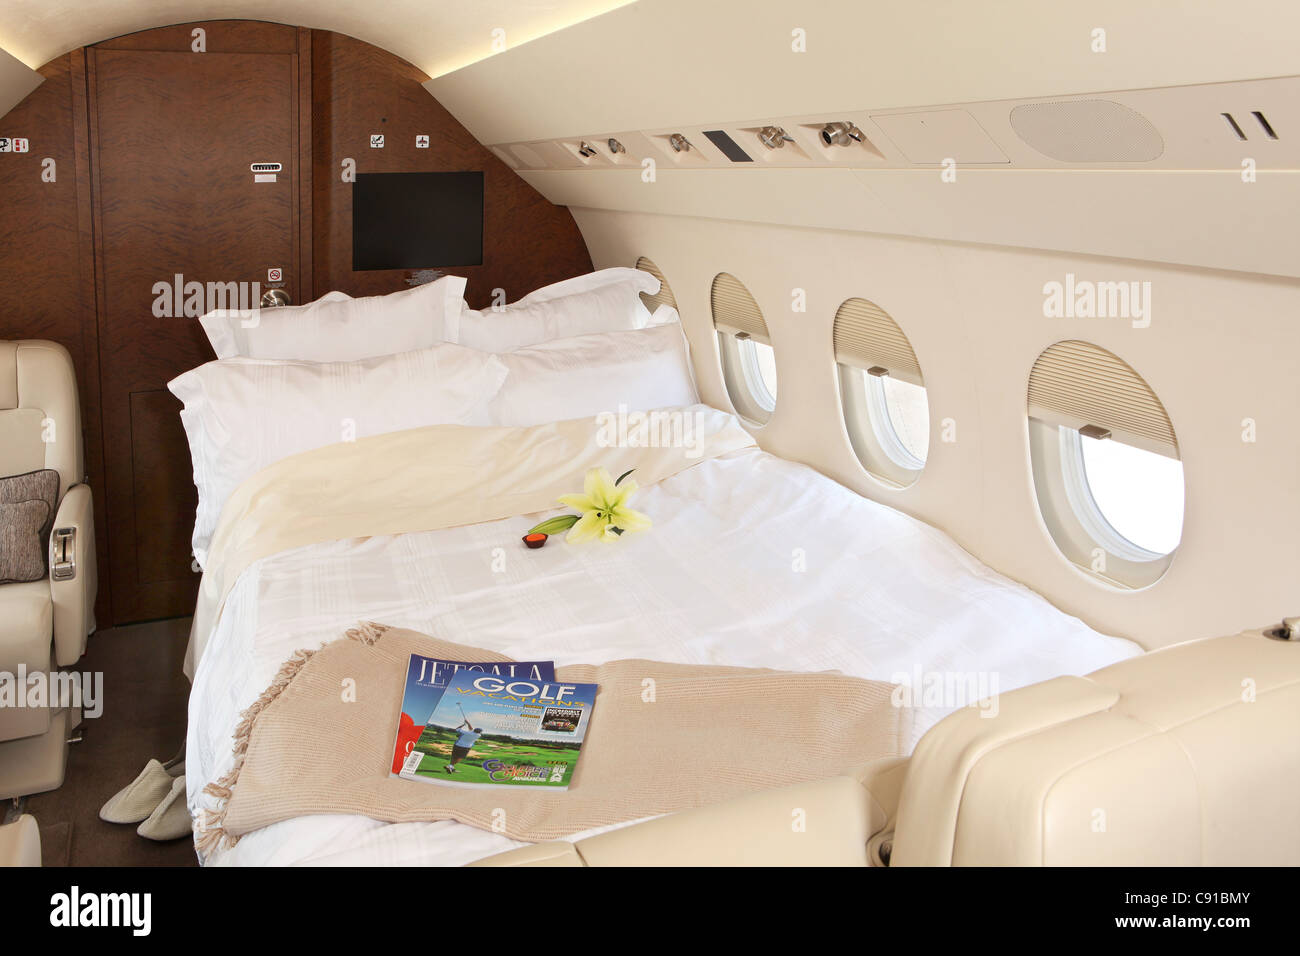 Interior Of A Private Jet Bed Airplane Stock Photo Royalty Free Image 39983803 Alamy